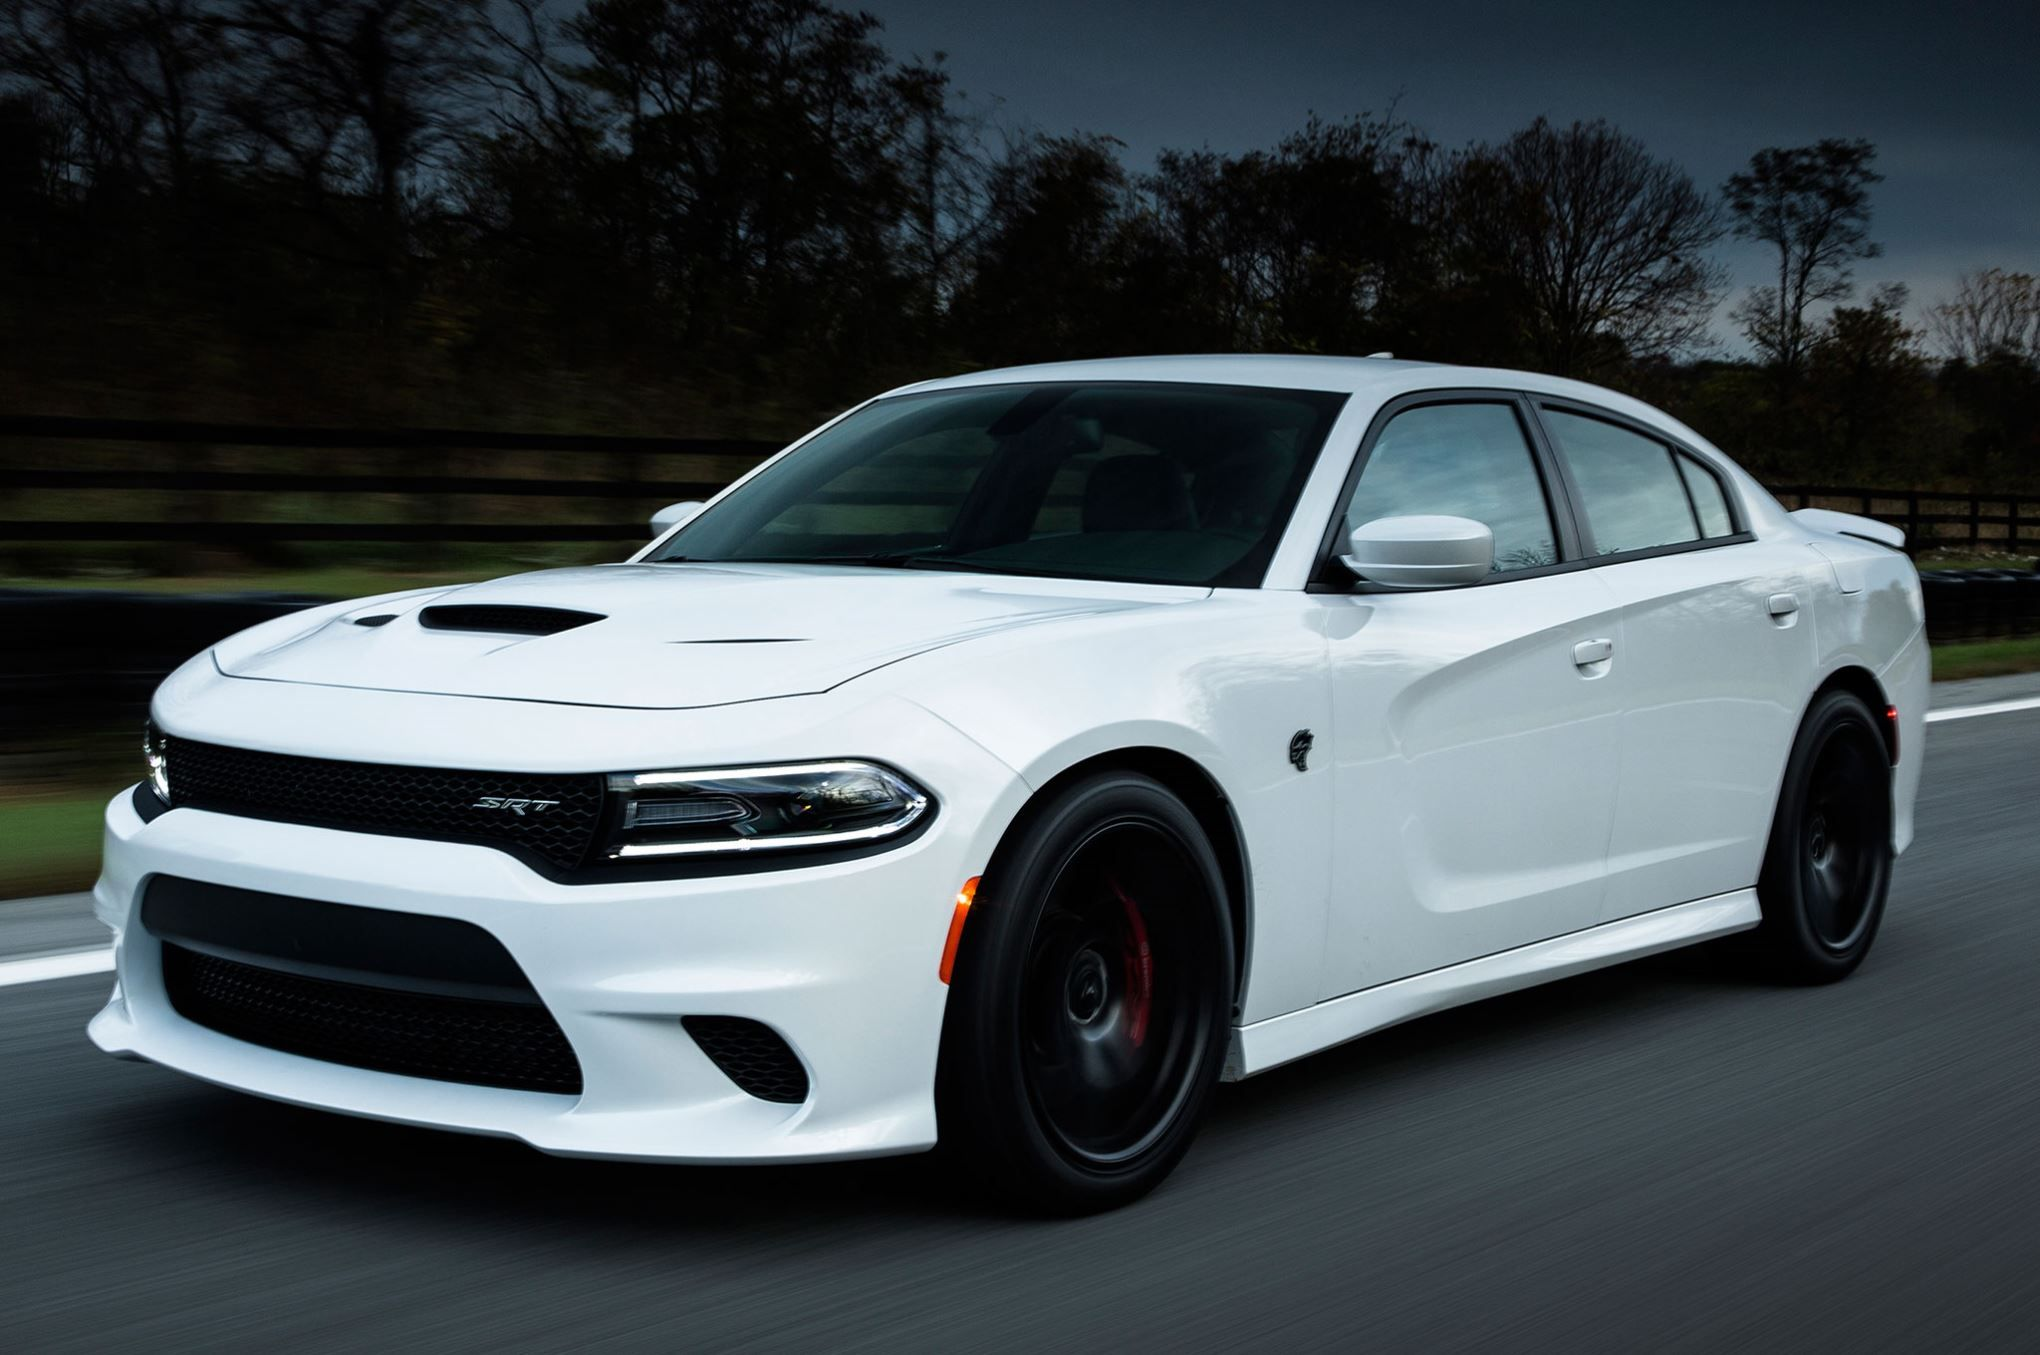 2015 Dodge Charger Srt Hellcat First Drive Charger Srt Charger Srt Hellcat Dodge Charger Srt